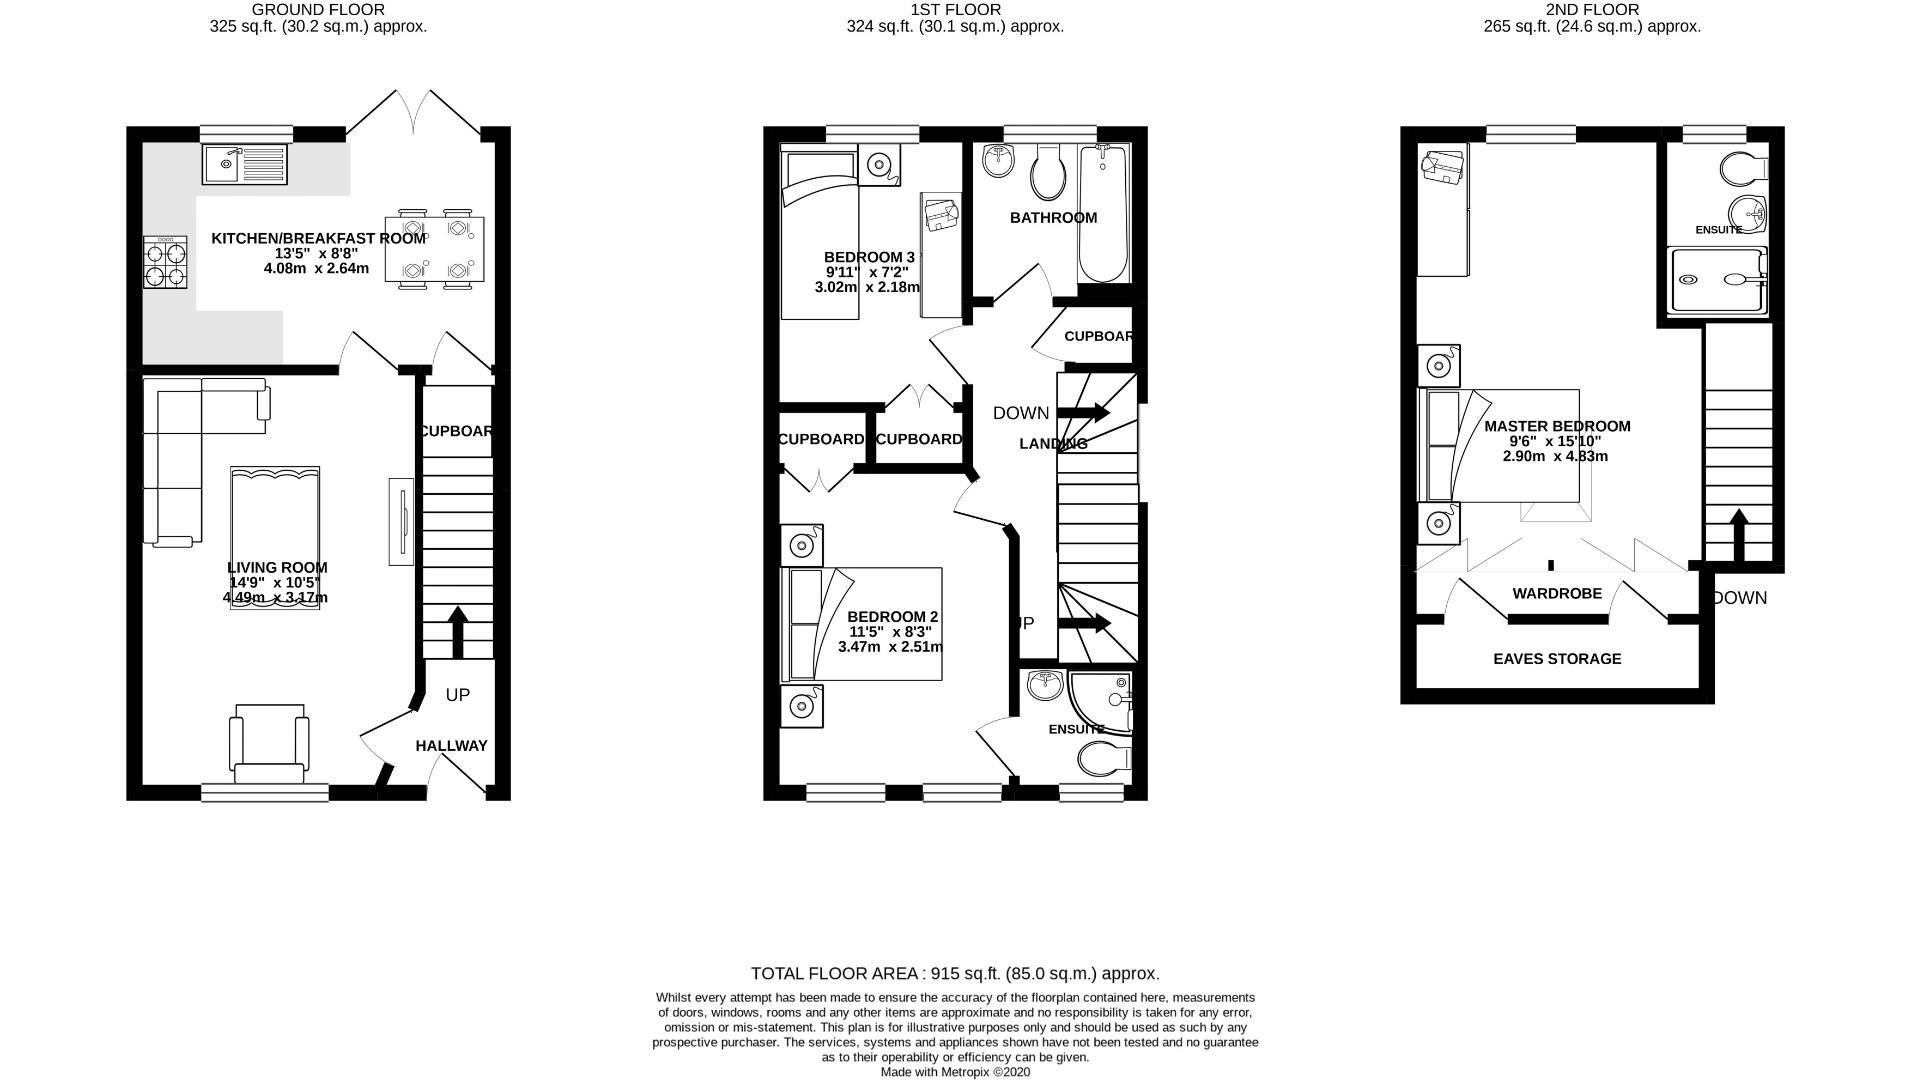 3 bed end of terrace for sale in Lower Earley - Property Floorplan